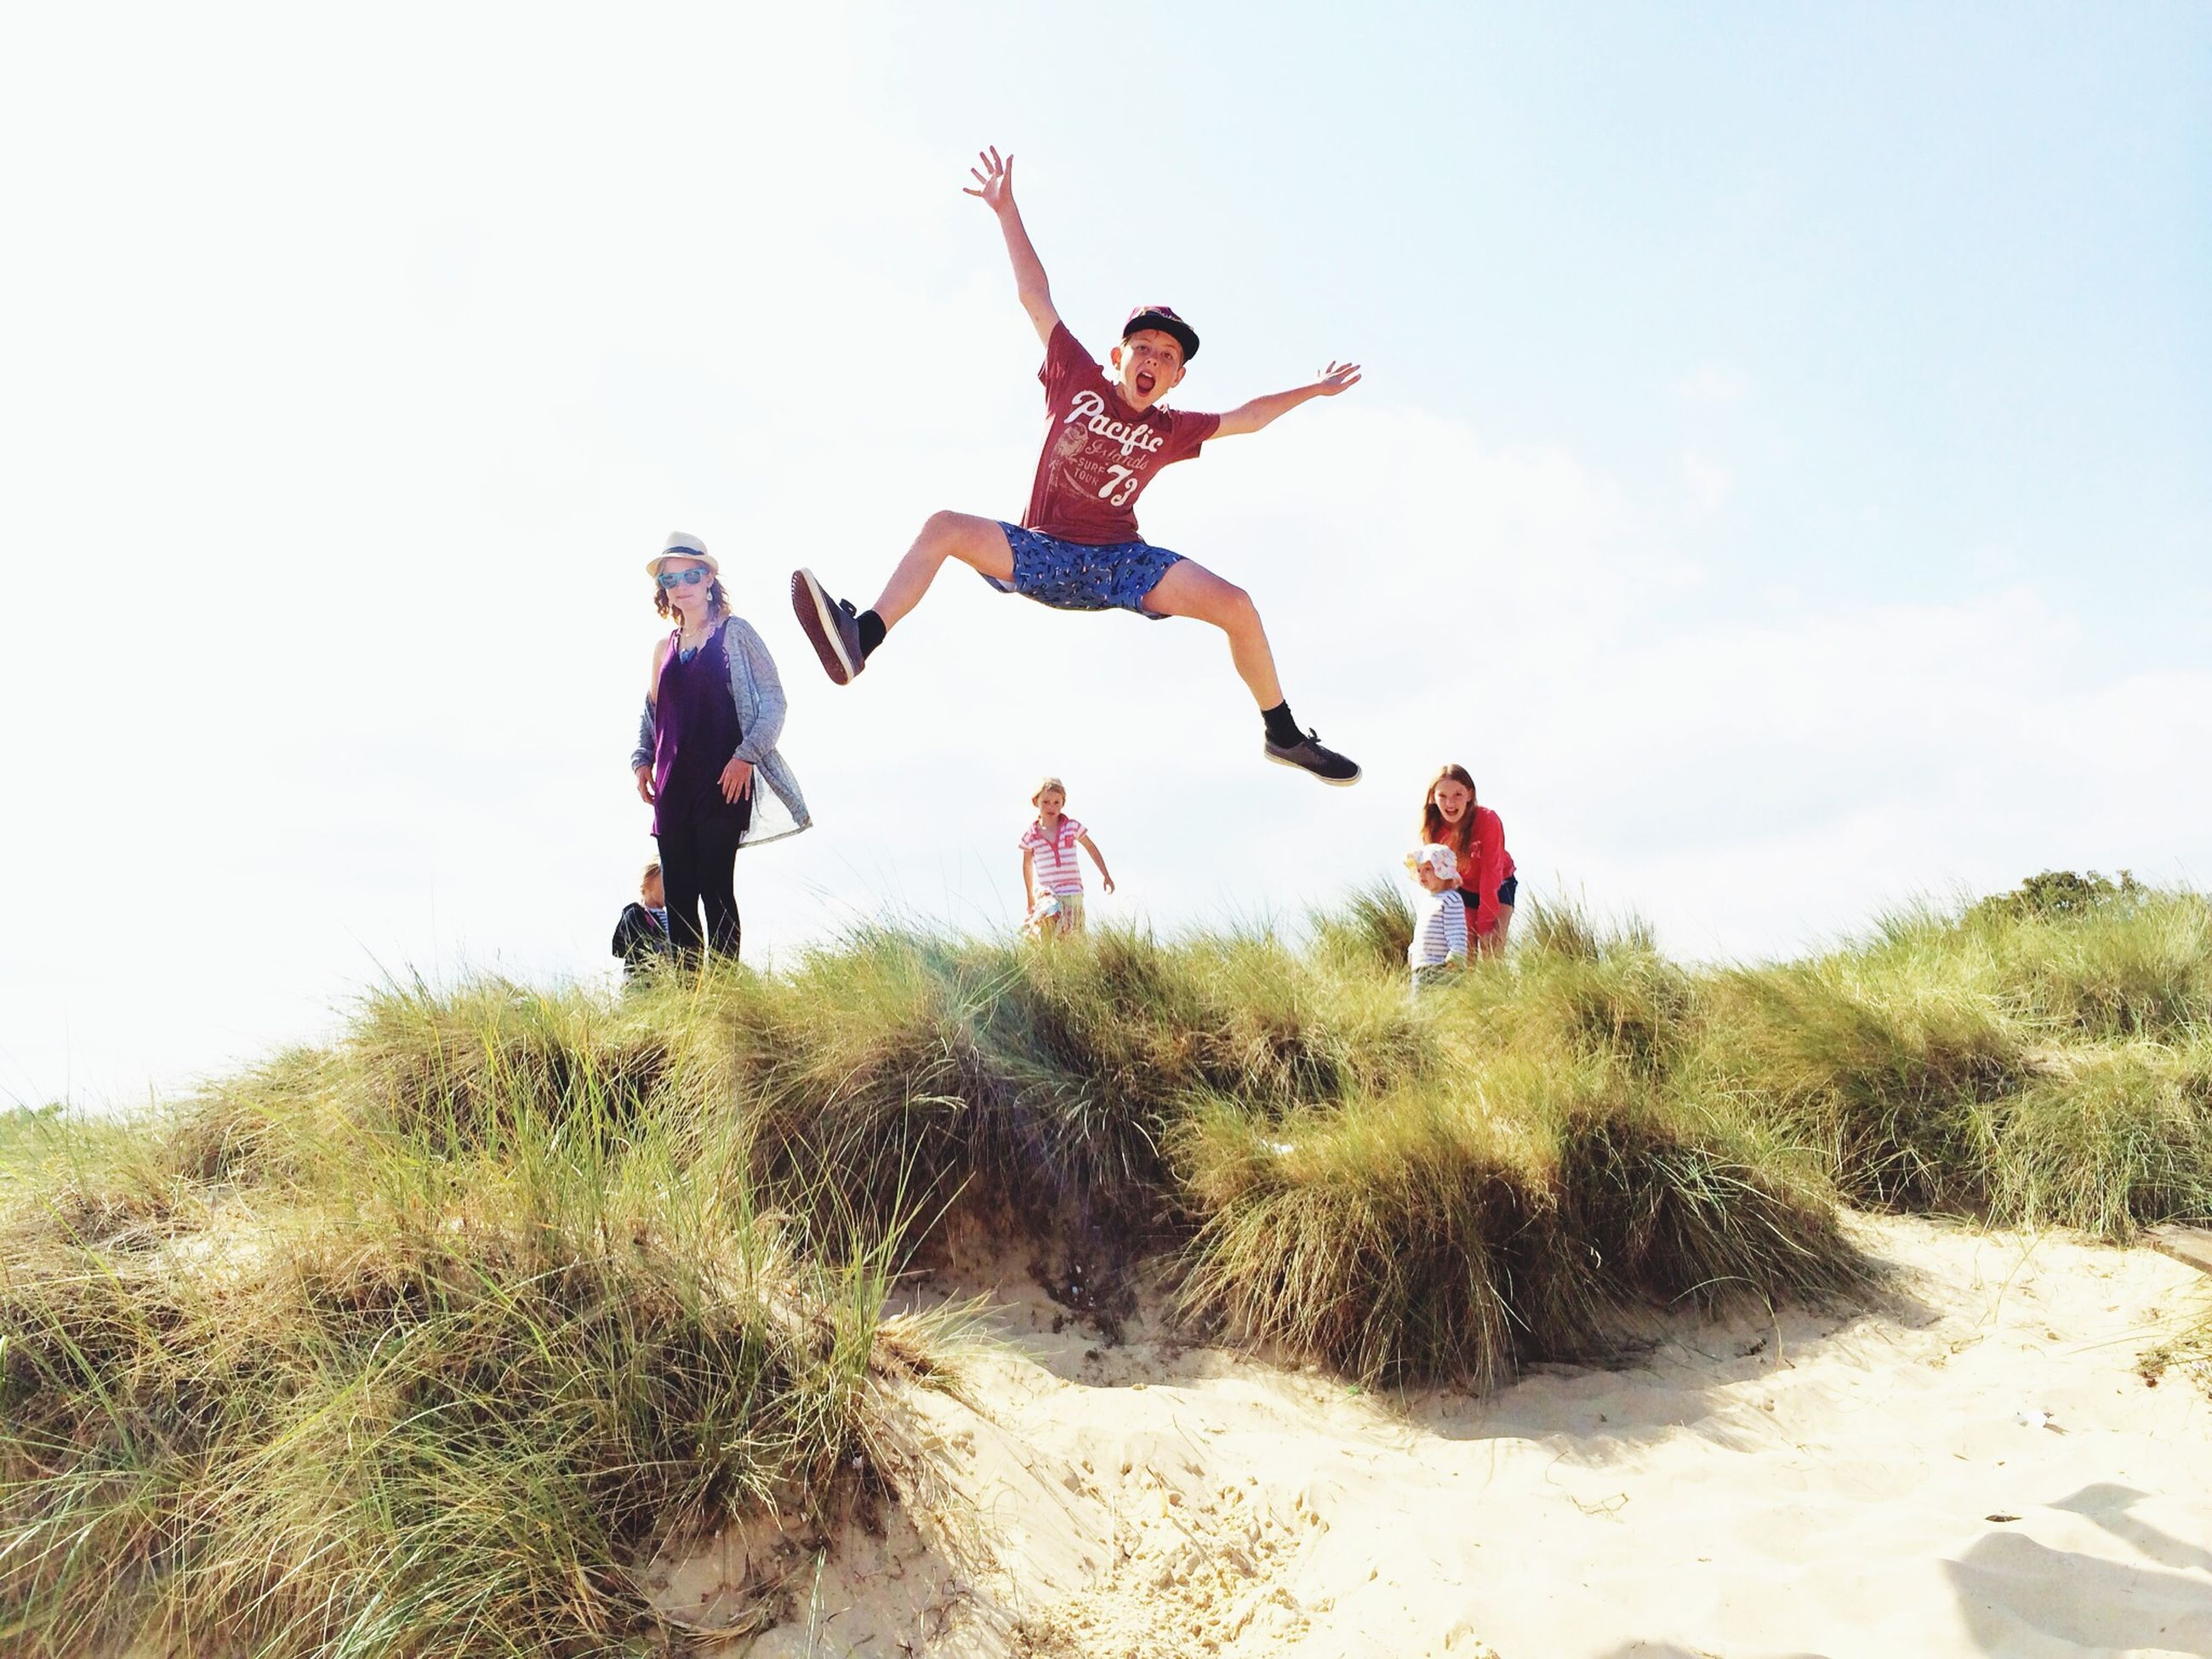 leisure activity, lifestyles, full length, fun, enjoyment, jumping, mid-air, togetherness, happiness, bonding, casual clothing, person, childhood, carefree, boys, playing, freedom, playful, arms outstretched